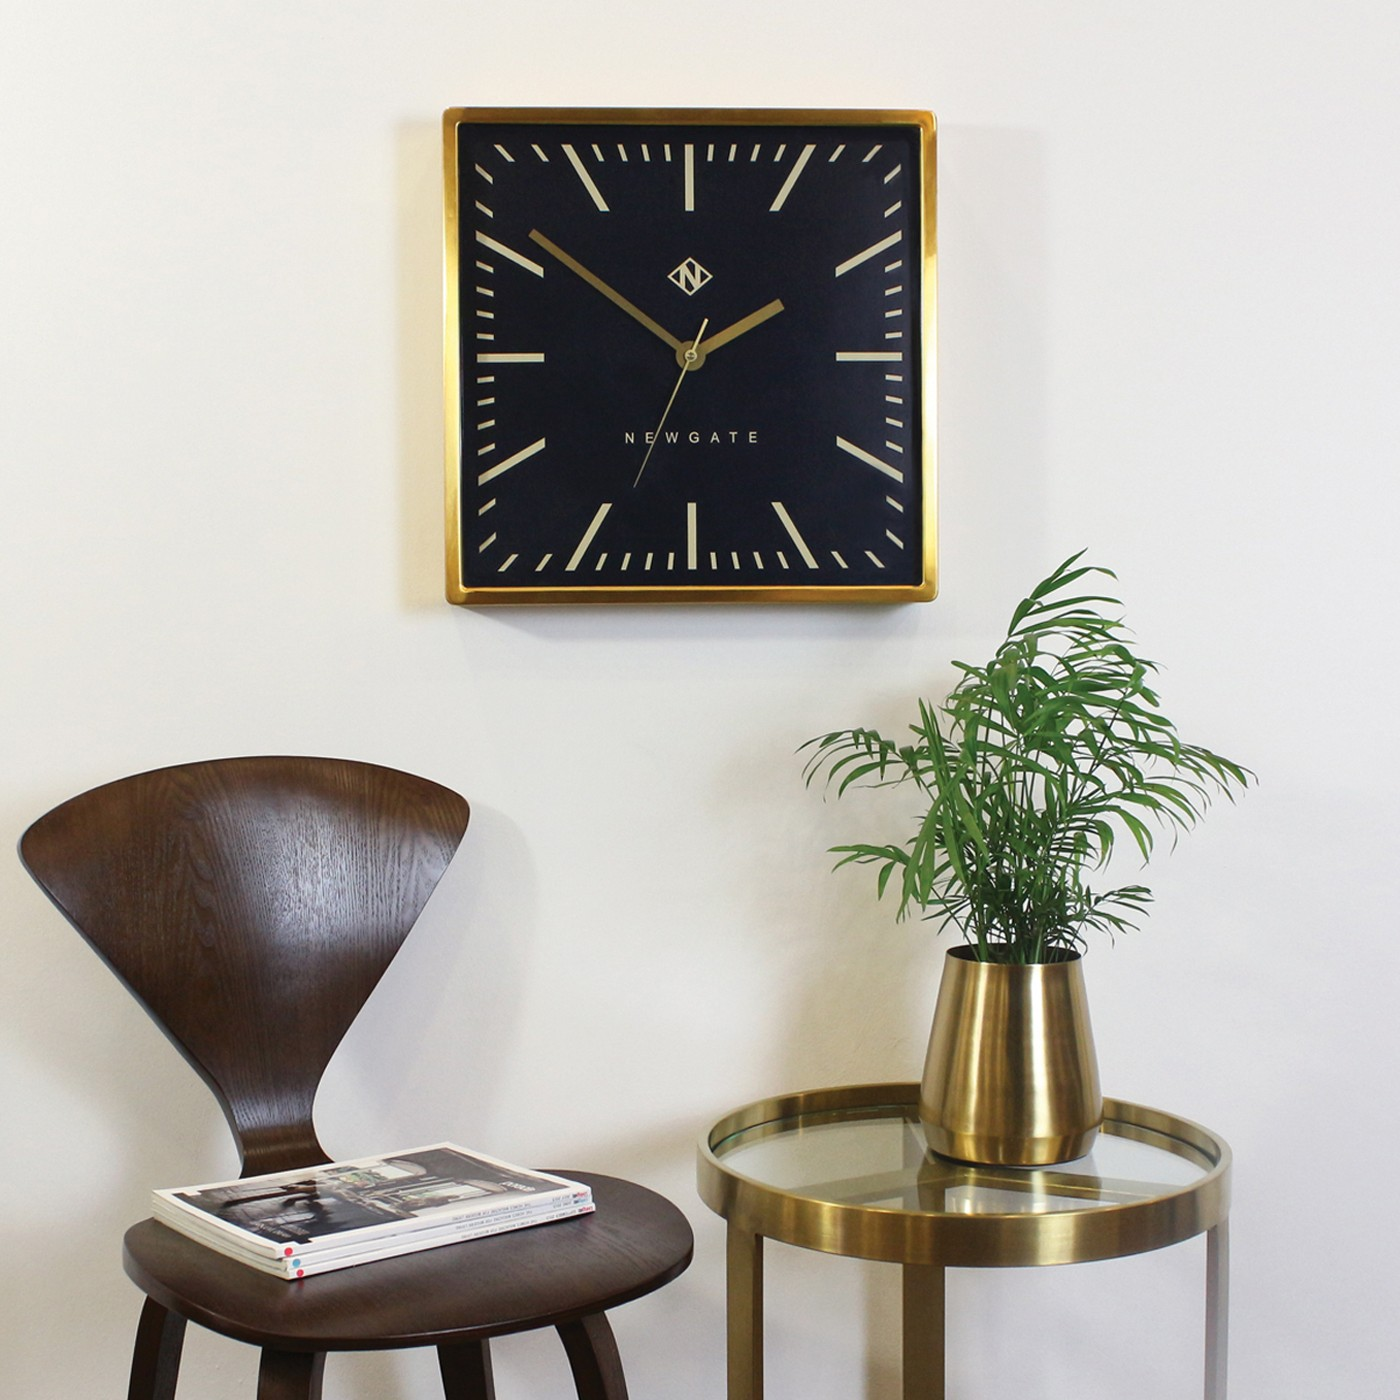 Underpass Wall Clock Brass by Newgate - Introduce a retro design aesthetic into your interior with this delightful wall clock, inspired by iconic underground station clocks.£140 at Heal's